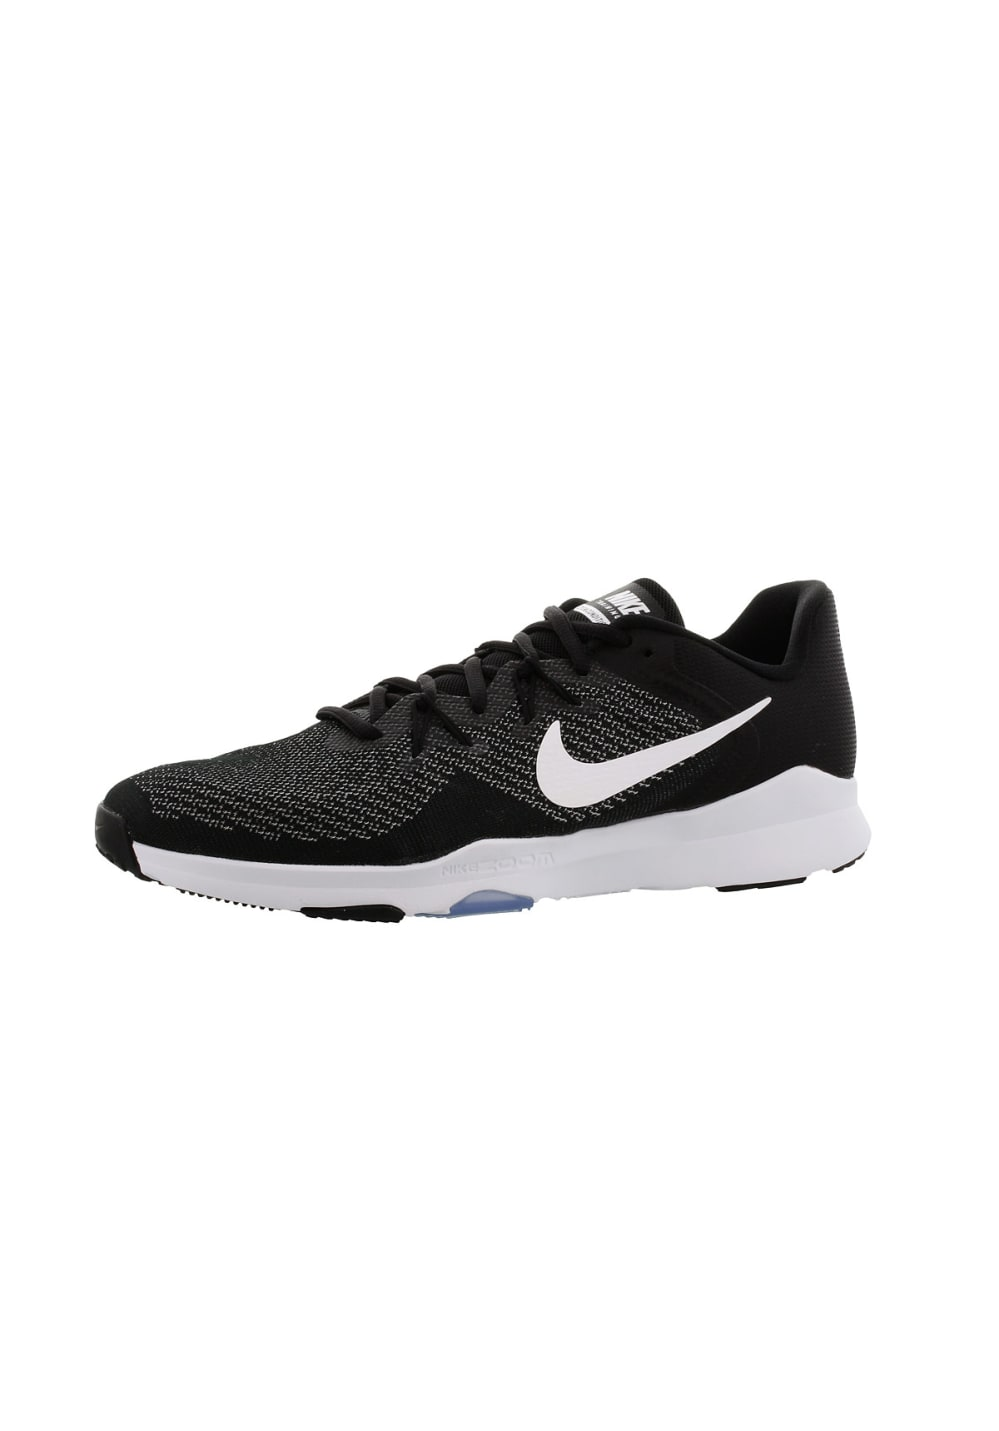 269758a86ce186 Nike Zoom Condition Tr 2 - Fitness shoes for Women - Black